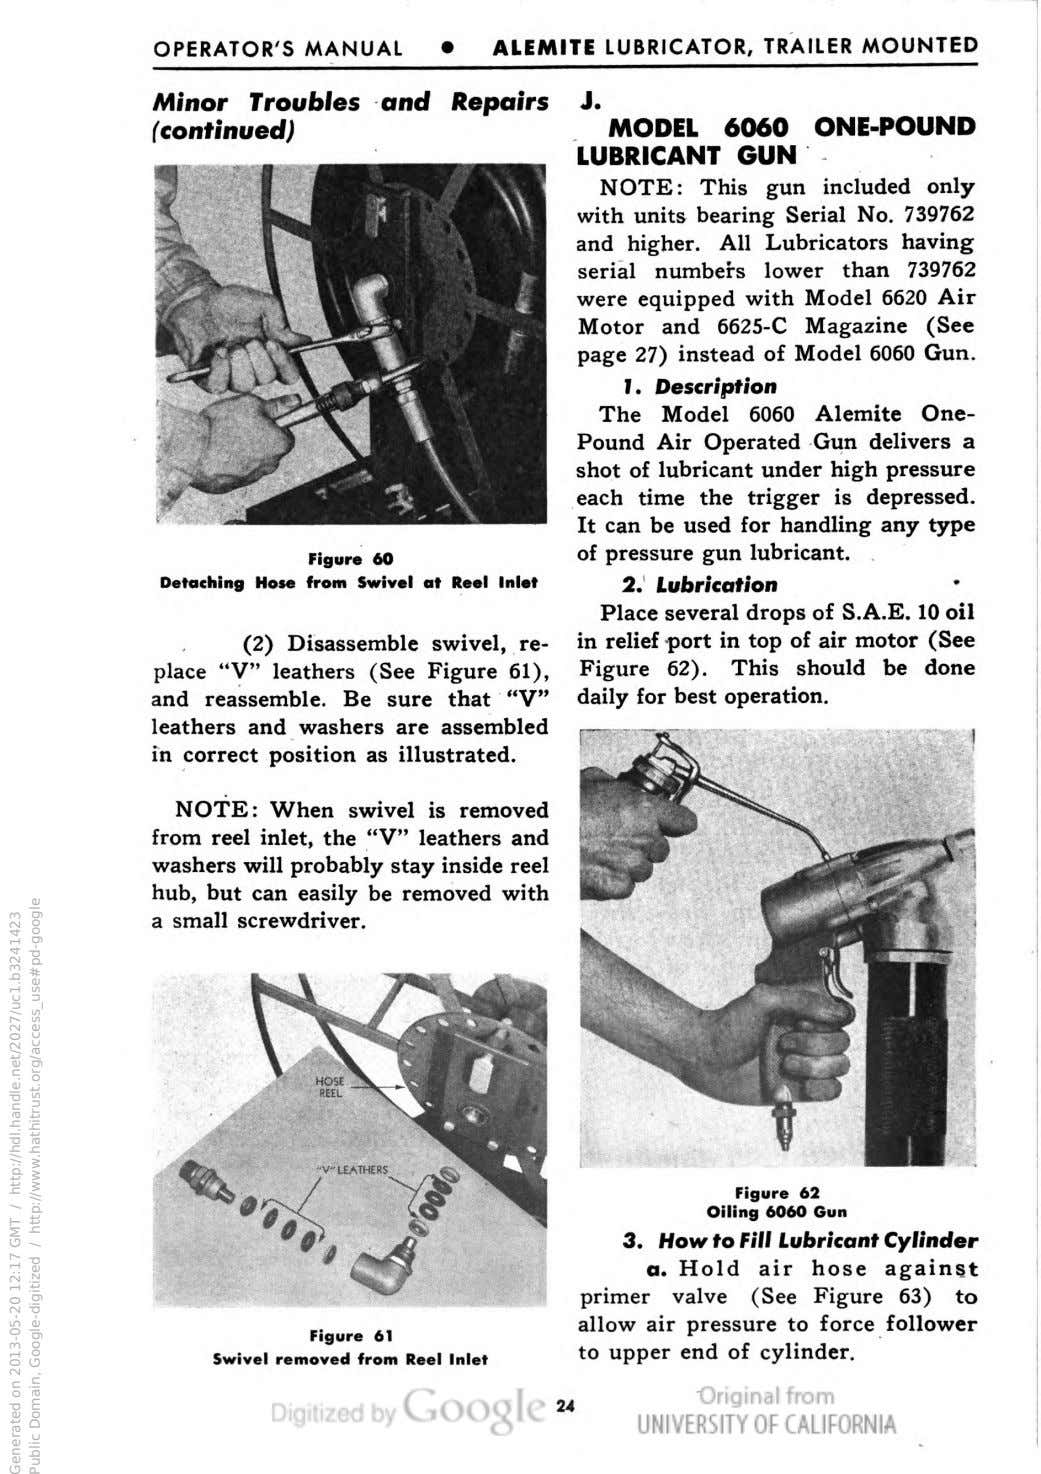 OPERATOR'S MANUAL • ALEMITE LUBRICATOR, TRAILER MOUNTED Minor Troubles and Repairs (continued) Figure 60